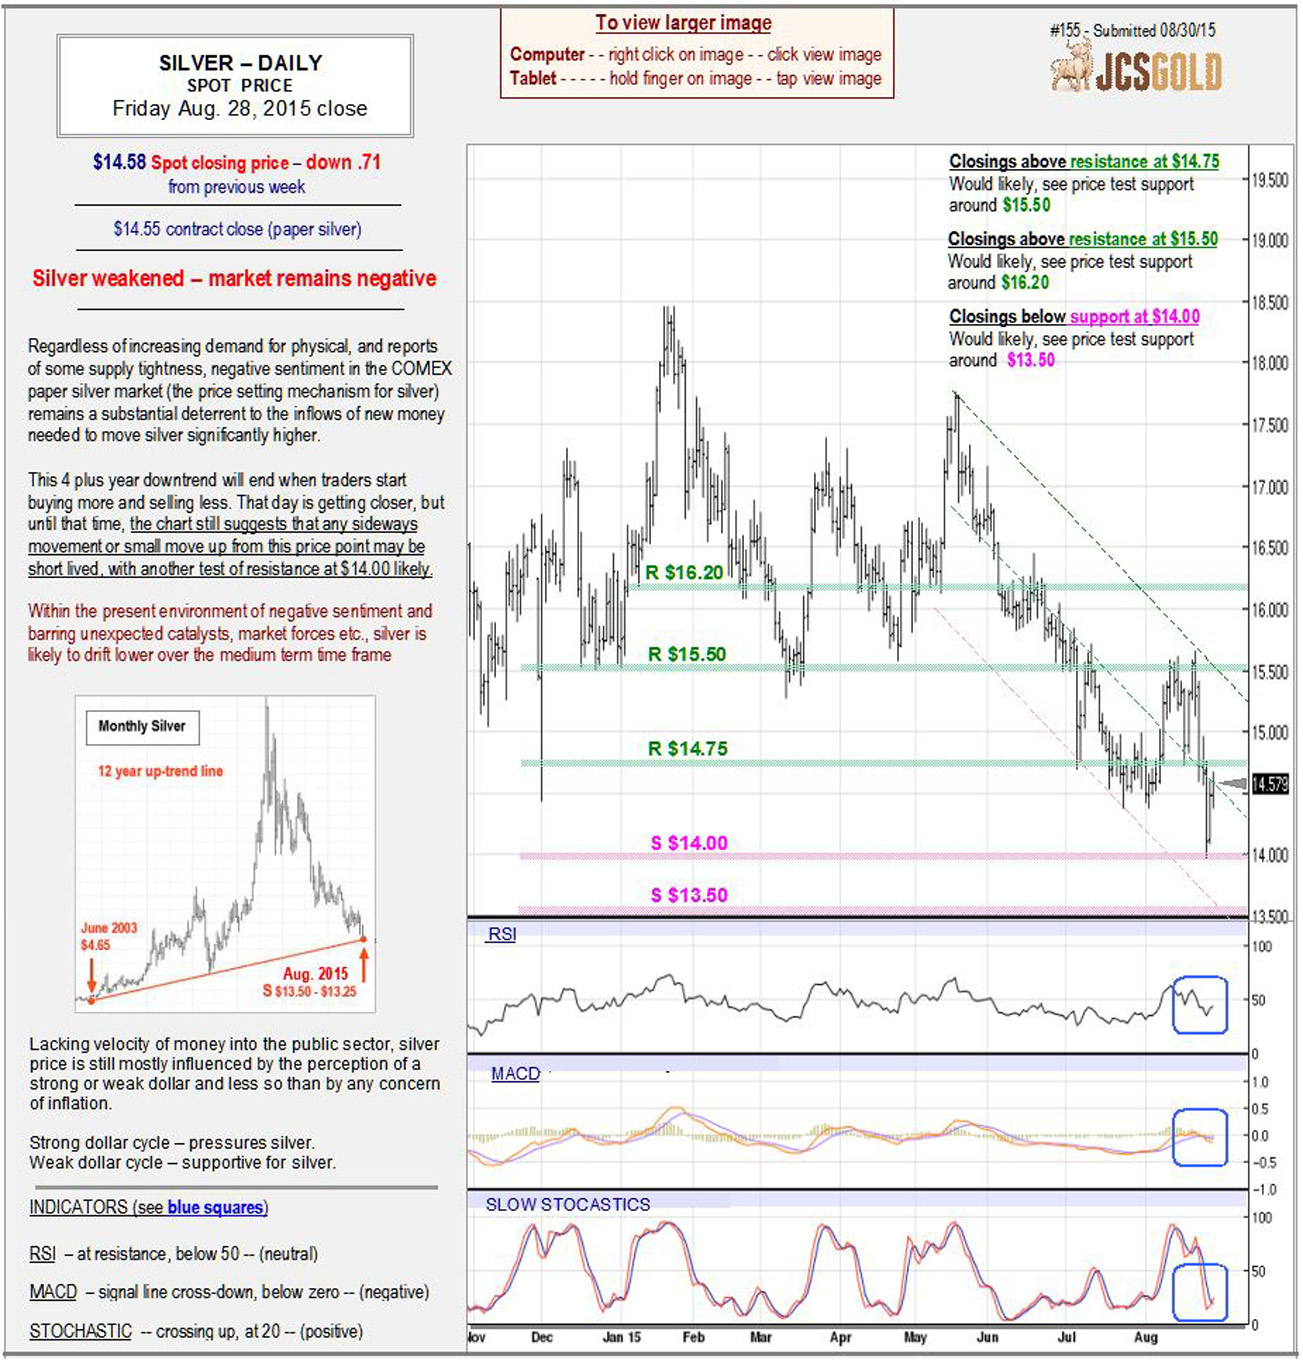 Aug 28, 2015 chart & commentary